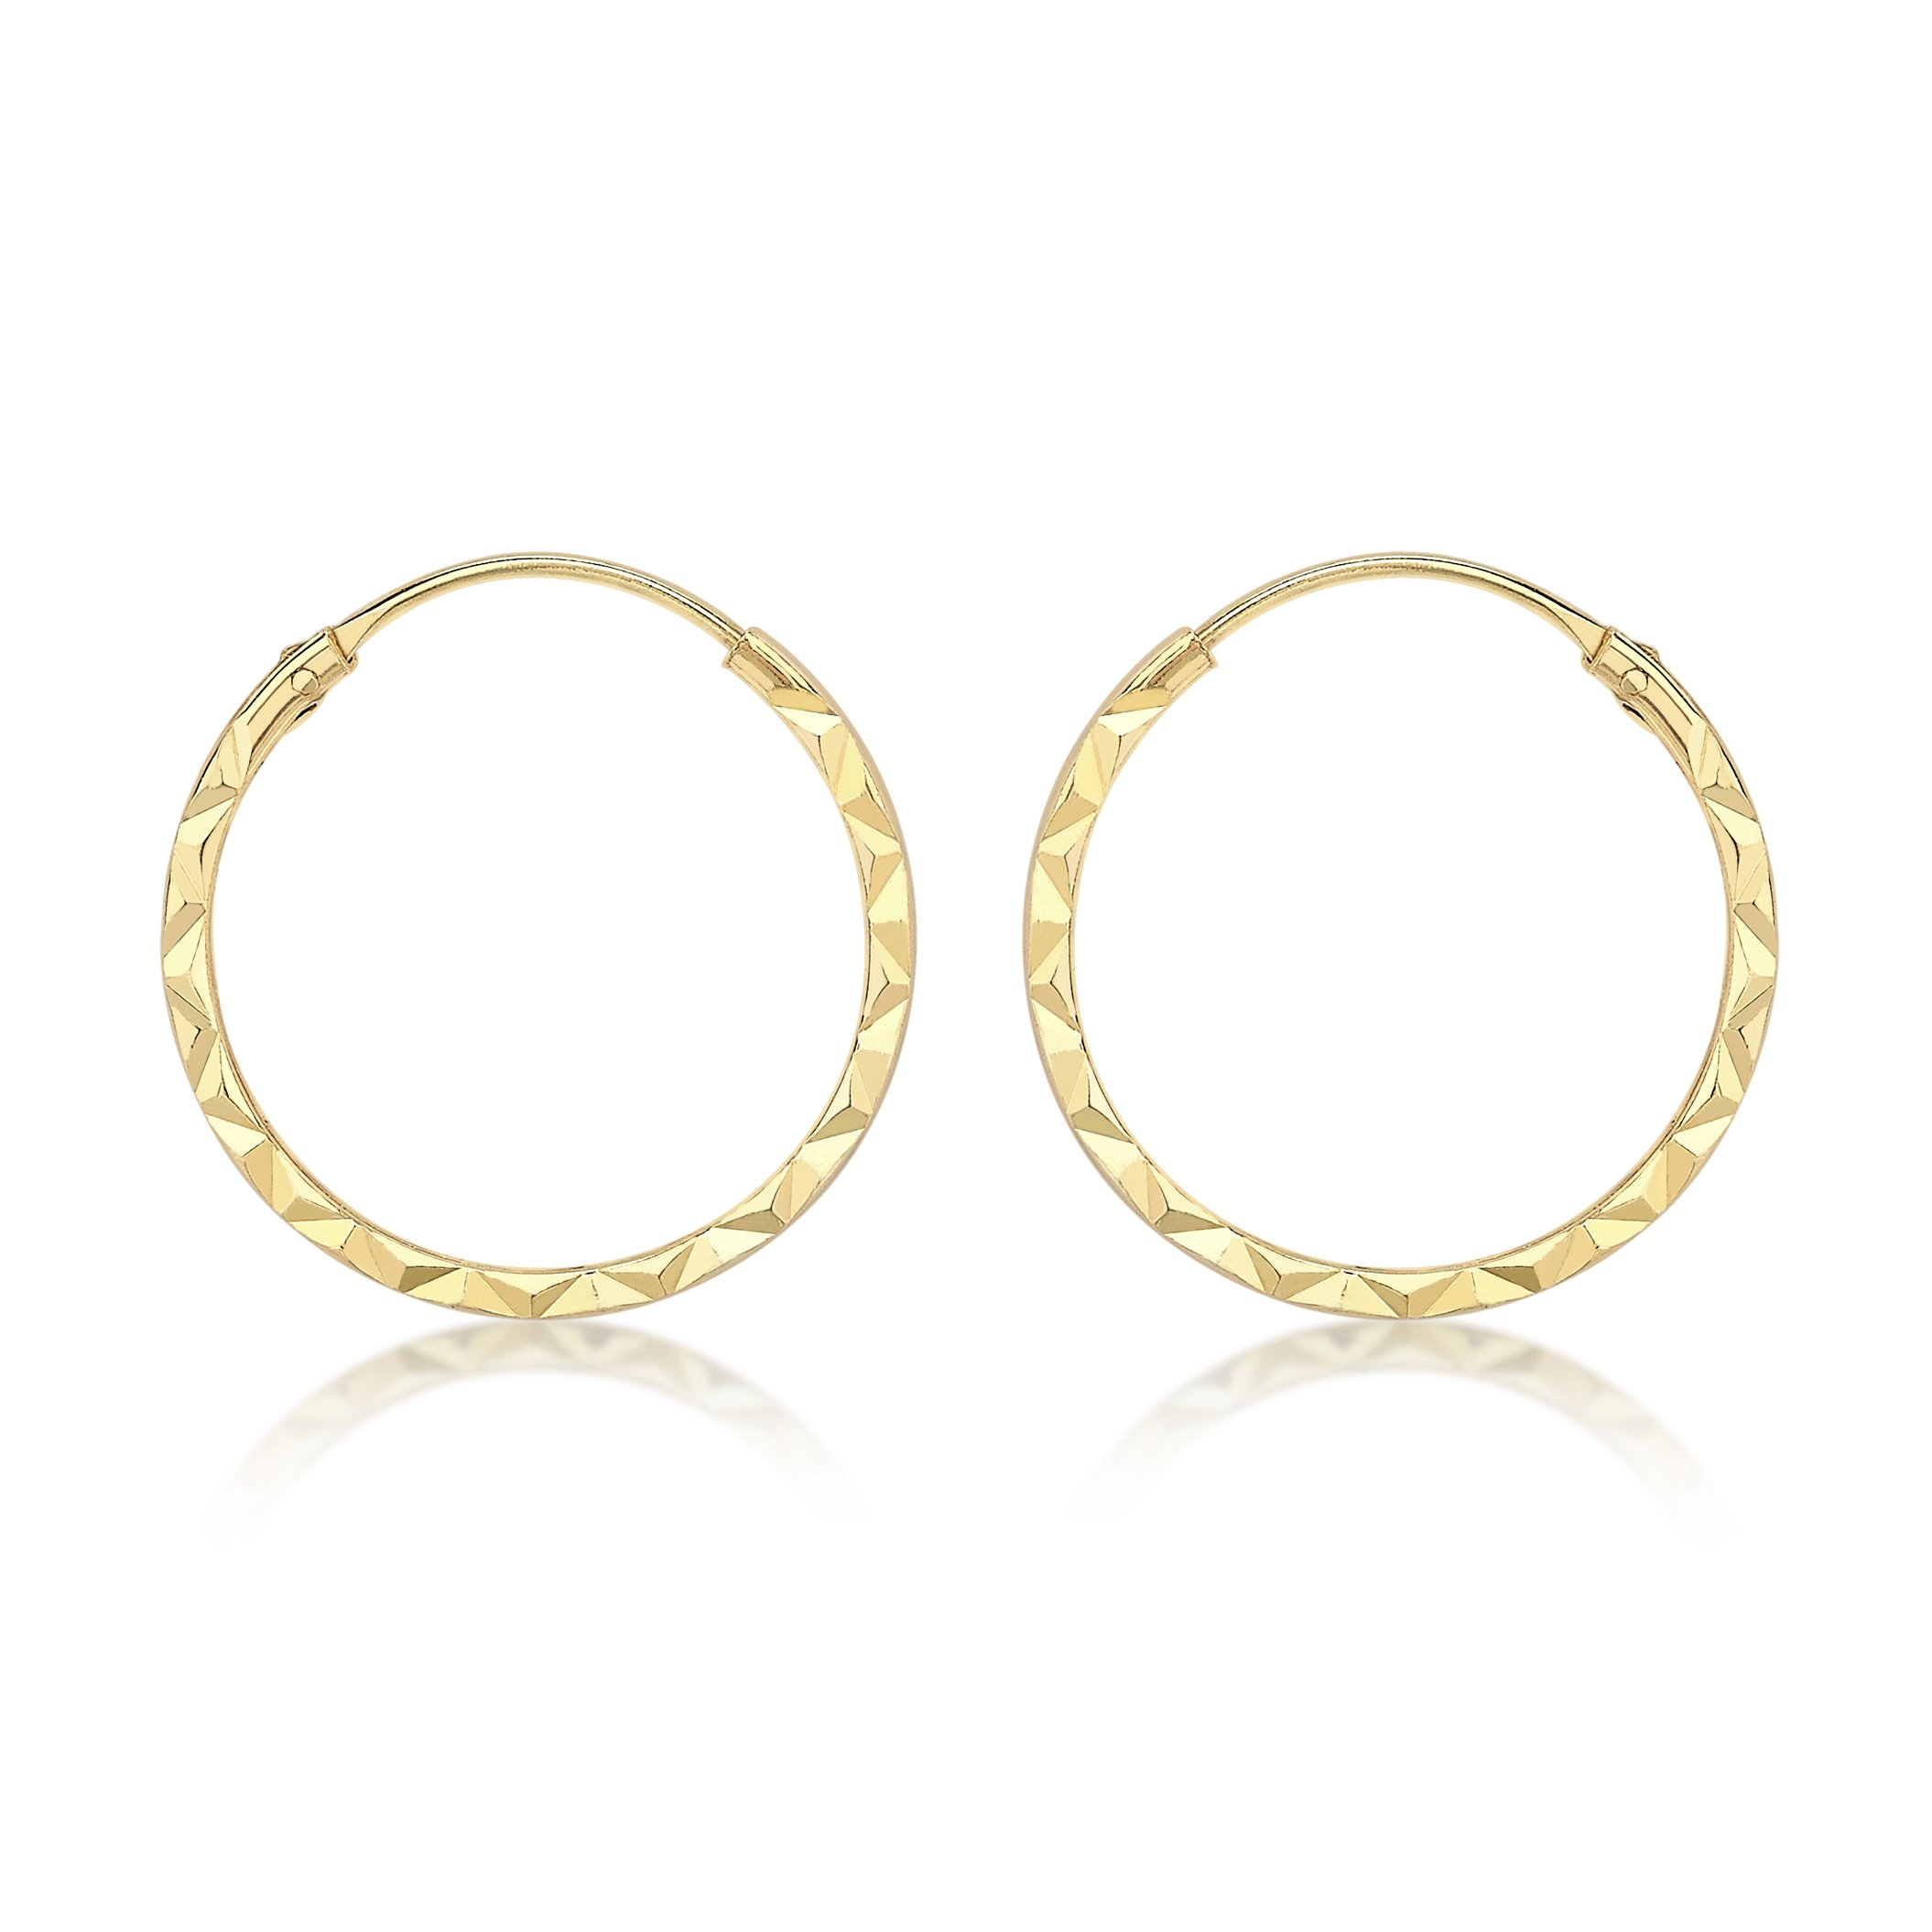 Gold hoop endless earrings 9 ct yellow gold